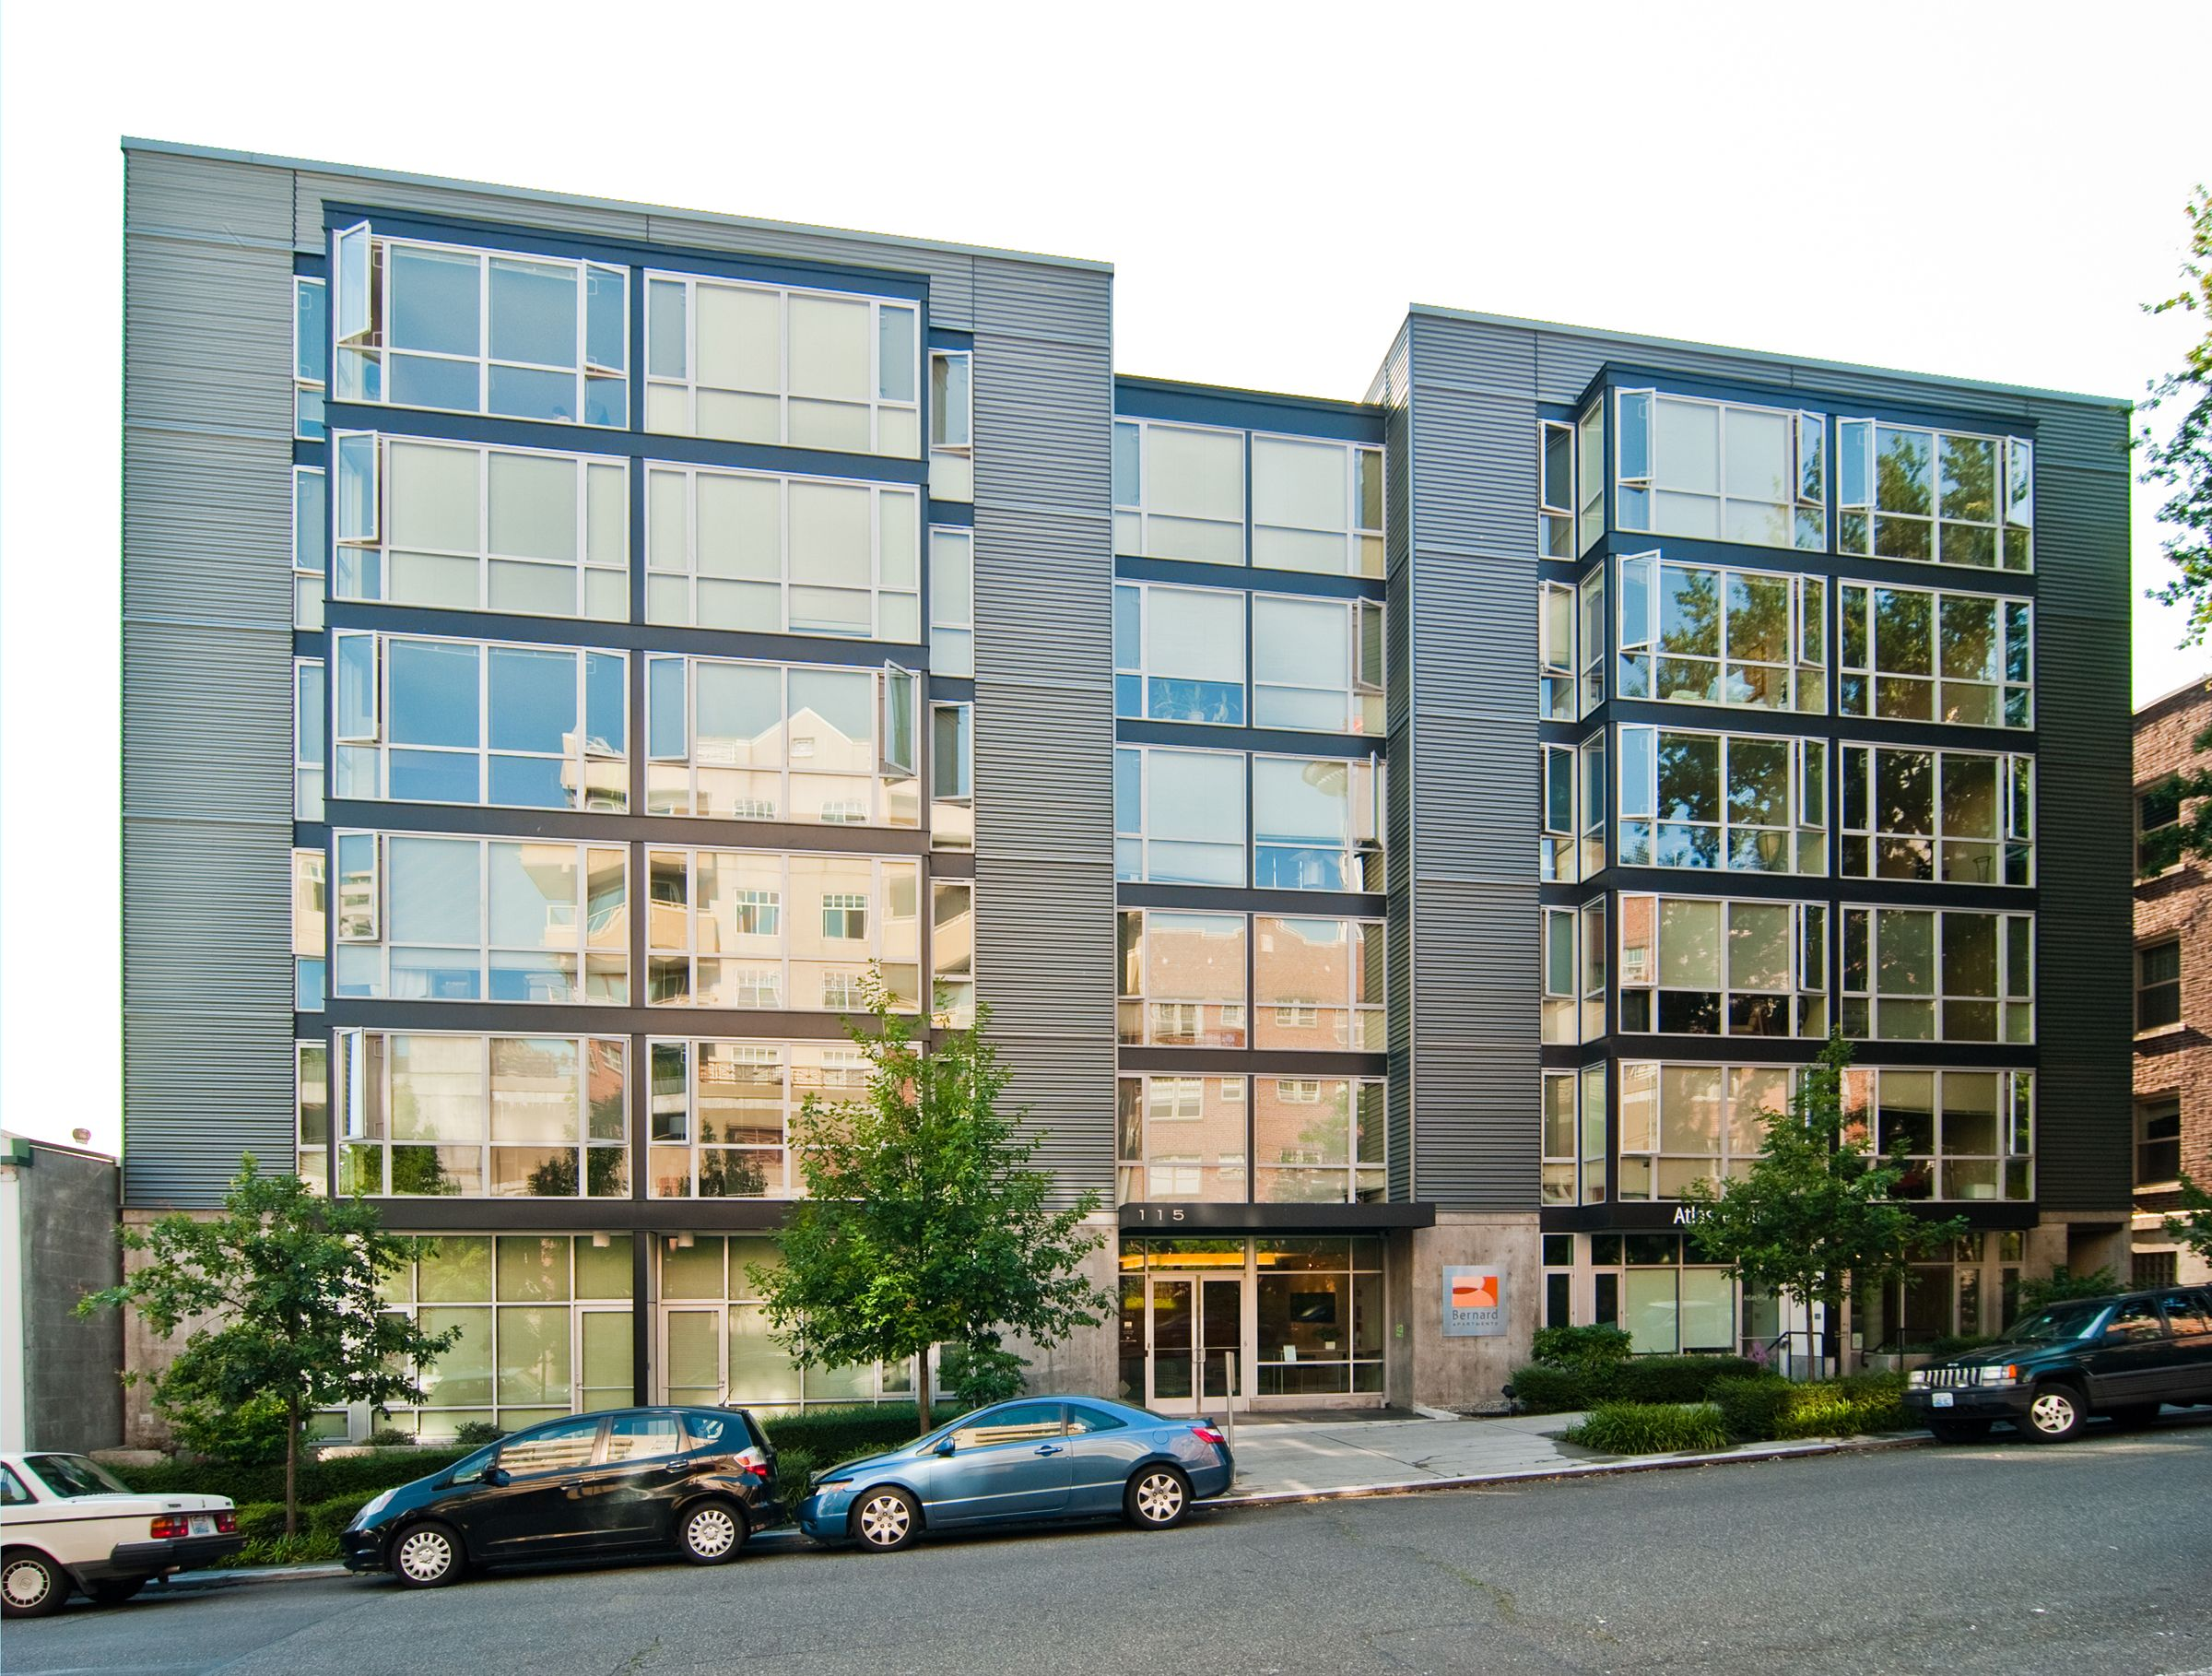 Bernard apartment building in seattle by weinstein a u for Building design jobs